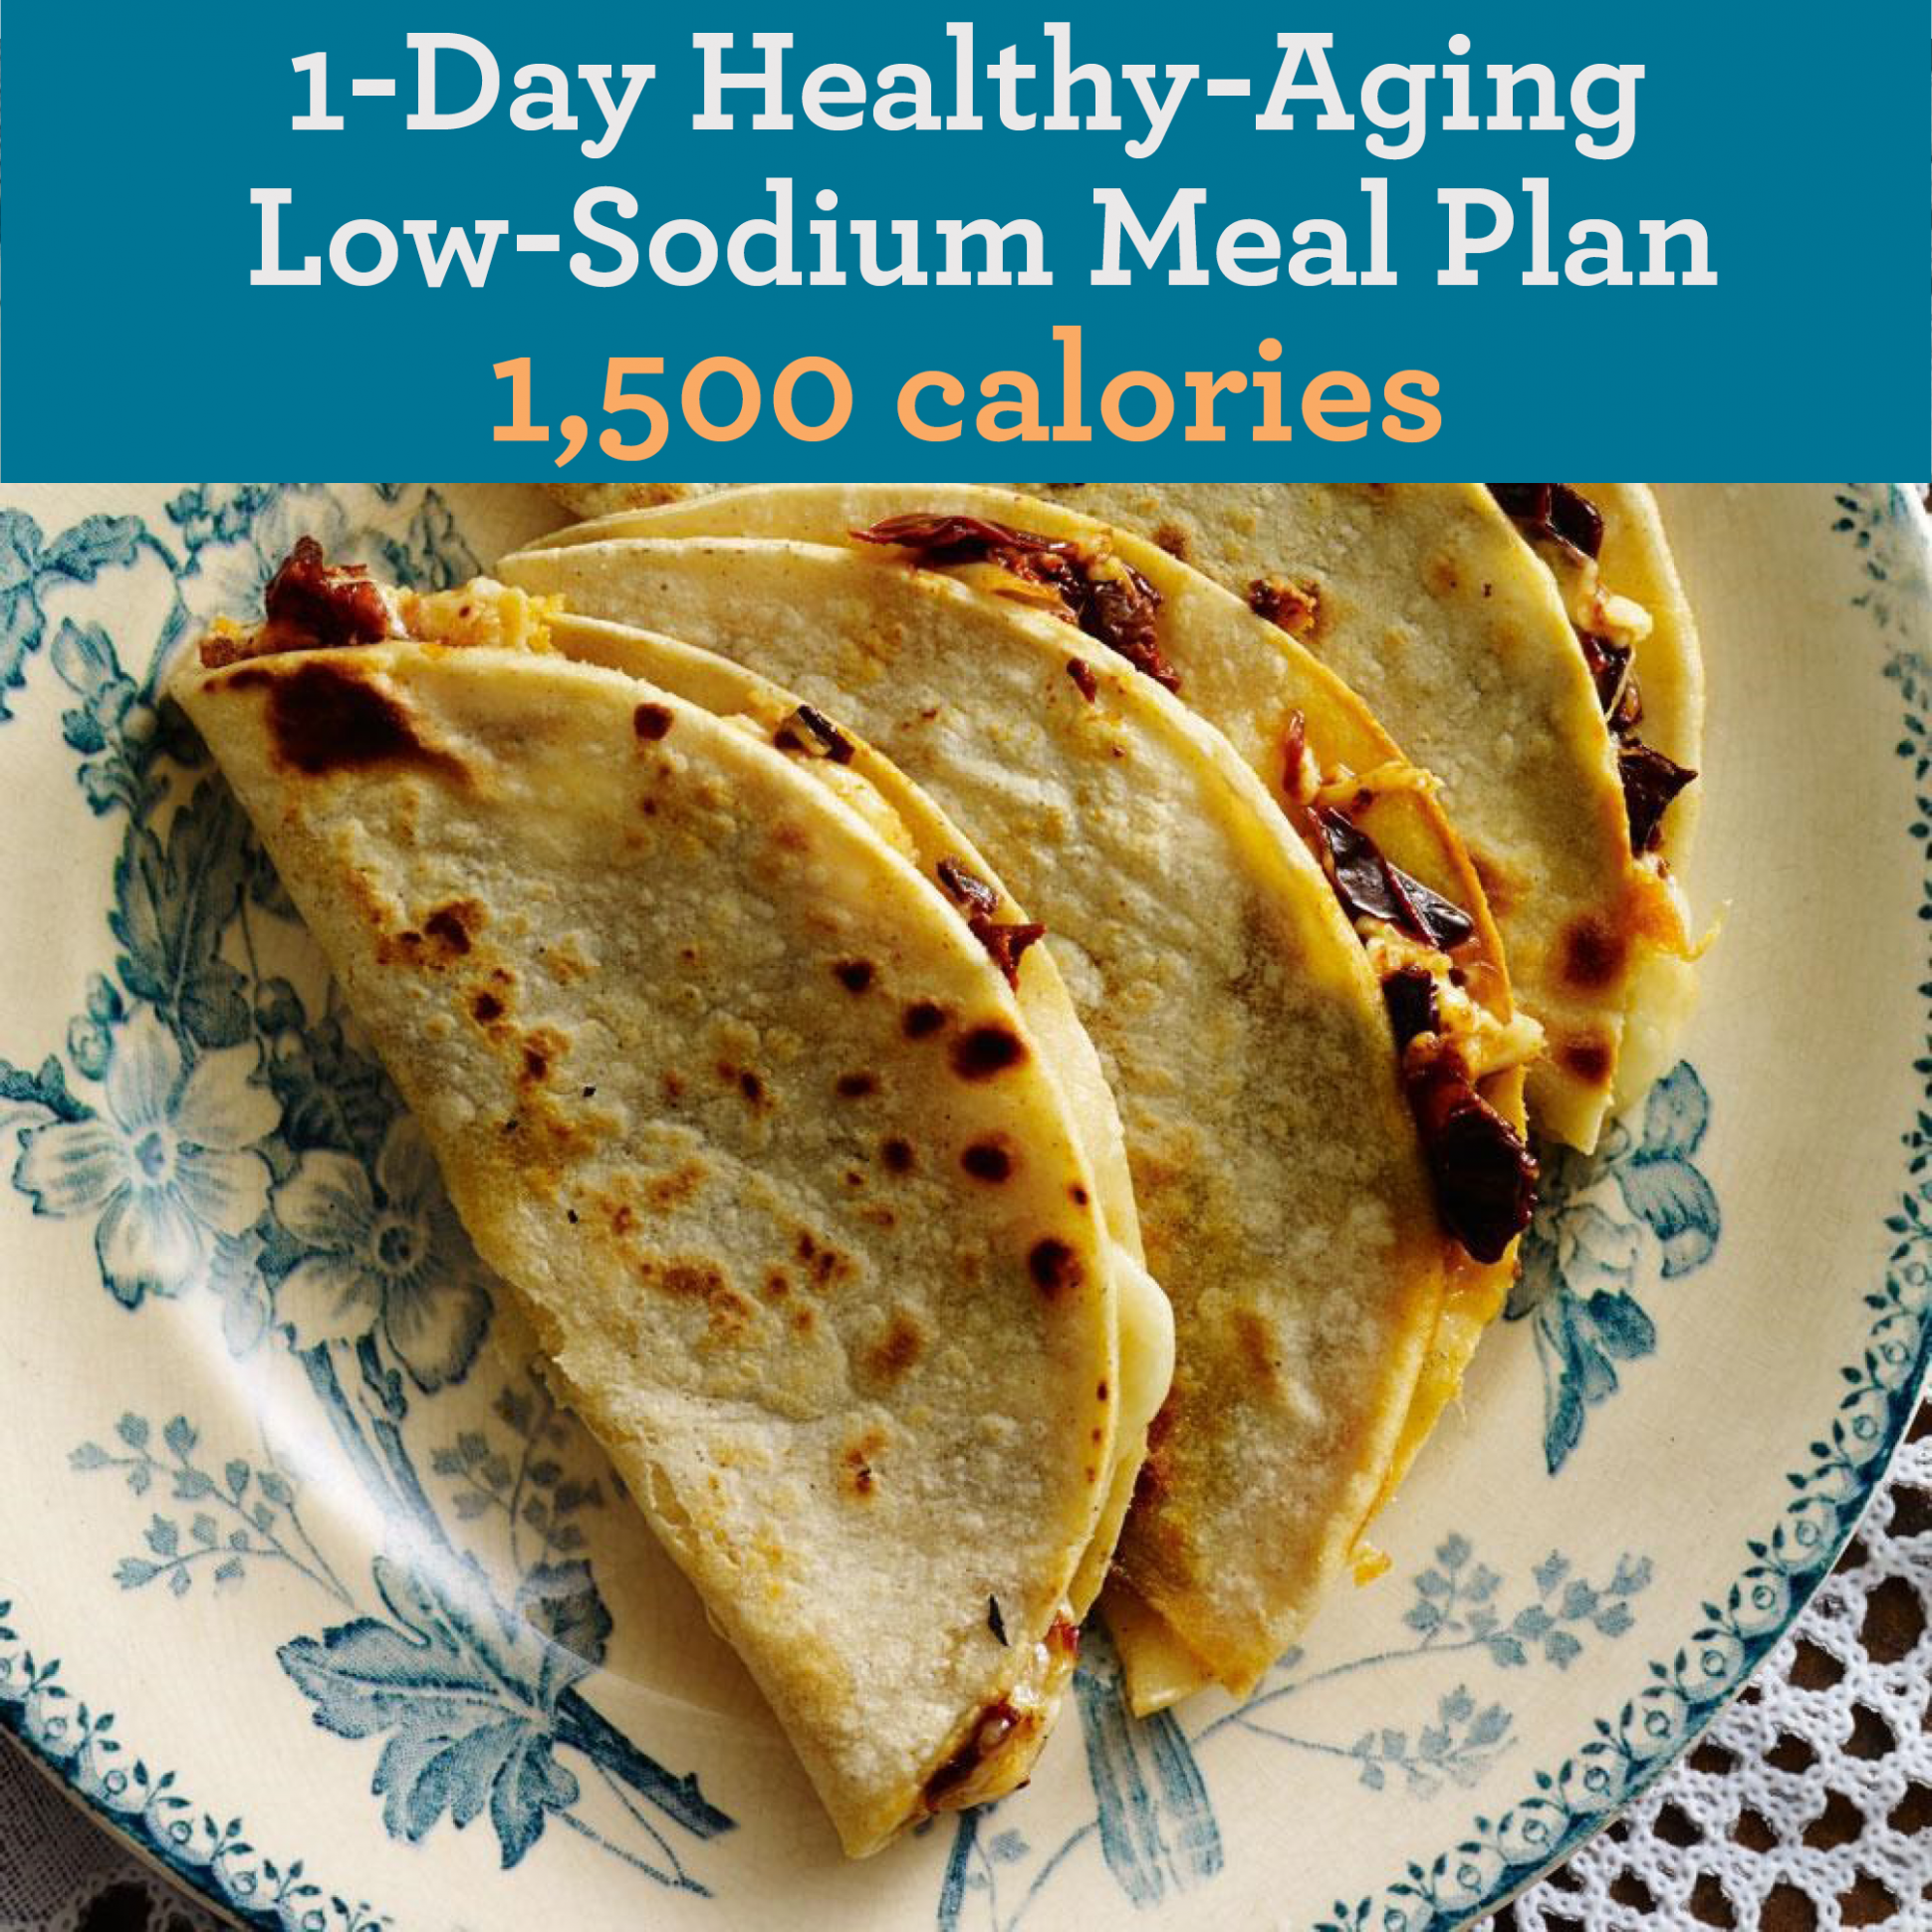 Low-Sodium Healthy-Aging Meal Plan: 12,12 Calories | EatingWell